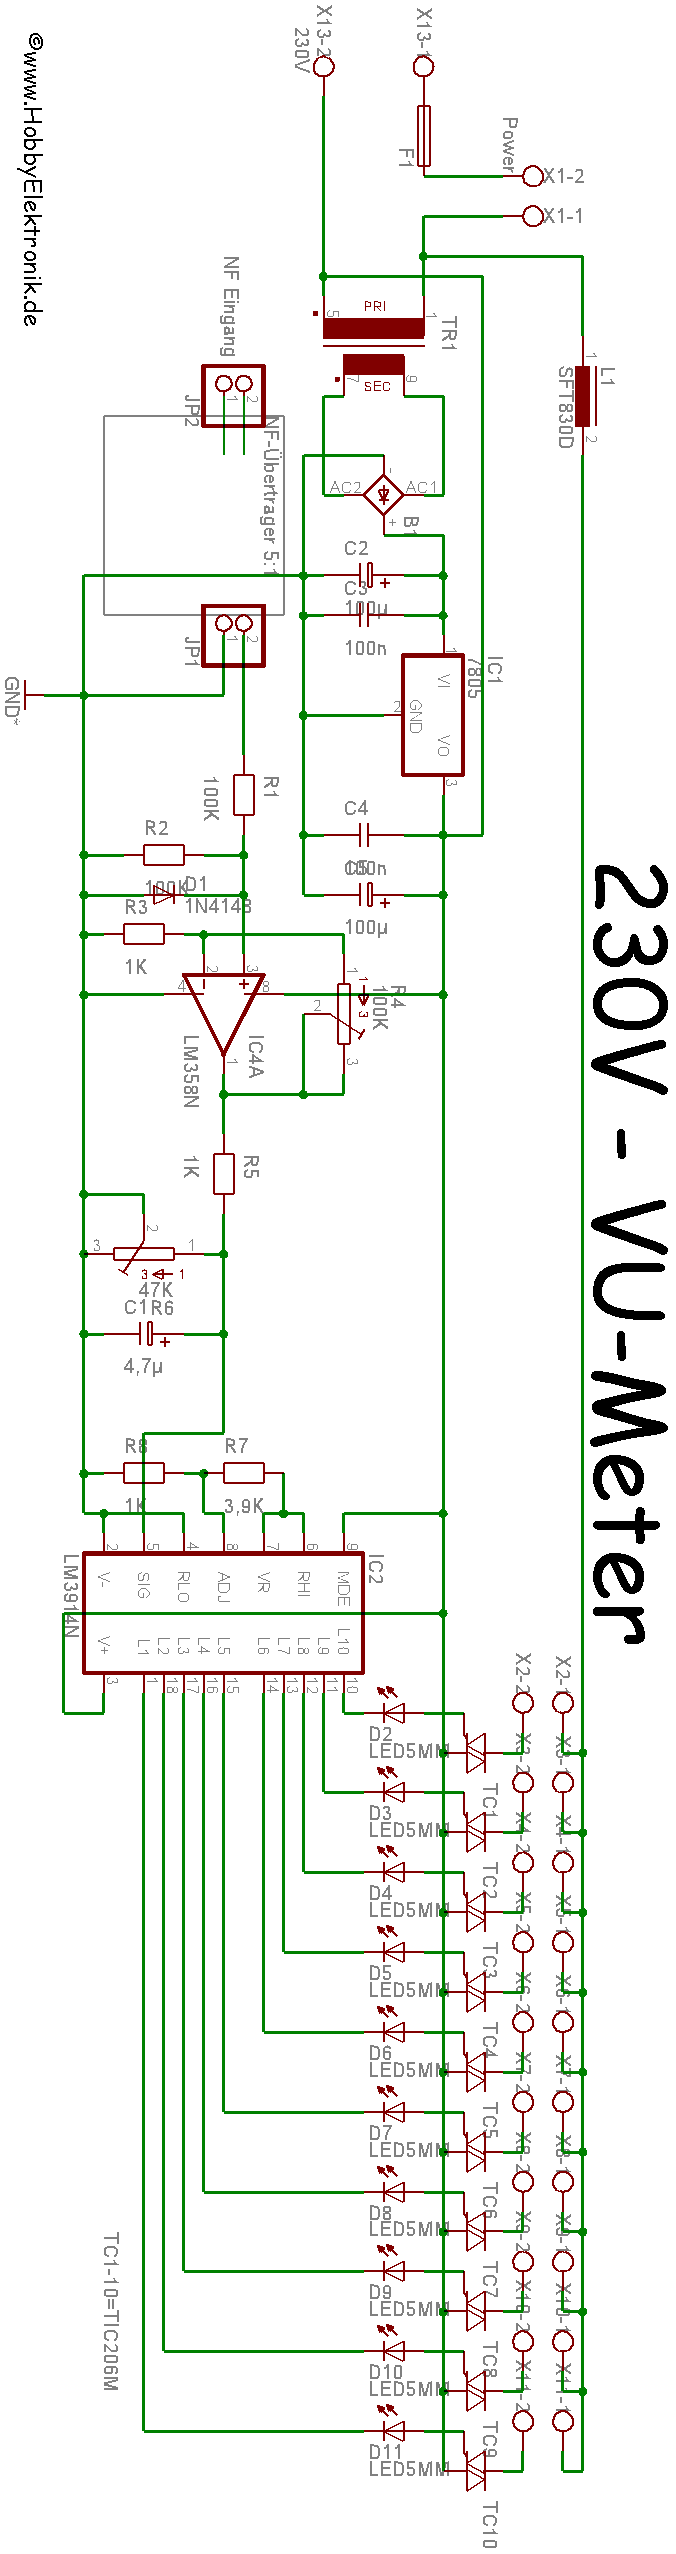 Lm3914 220v Light Vu Meter Circuit Electronics Projects Circuits Schematic Of Simple 230v Led Driver Vumetrethumbnail